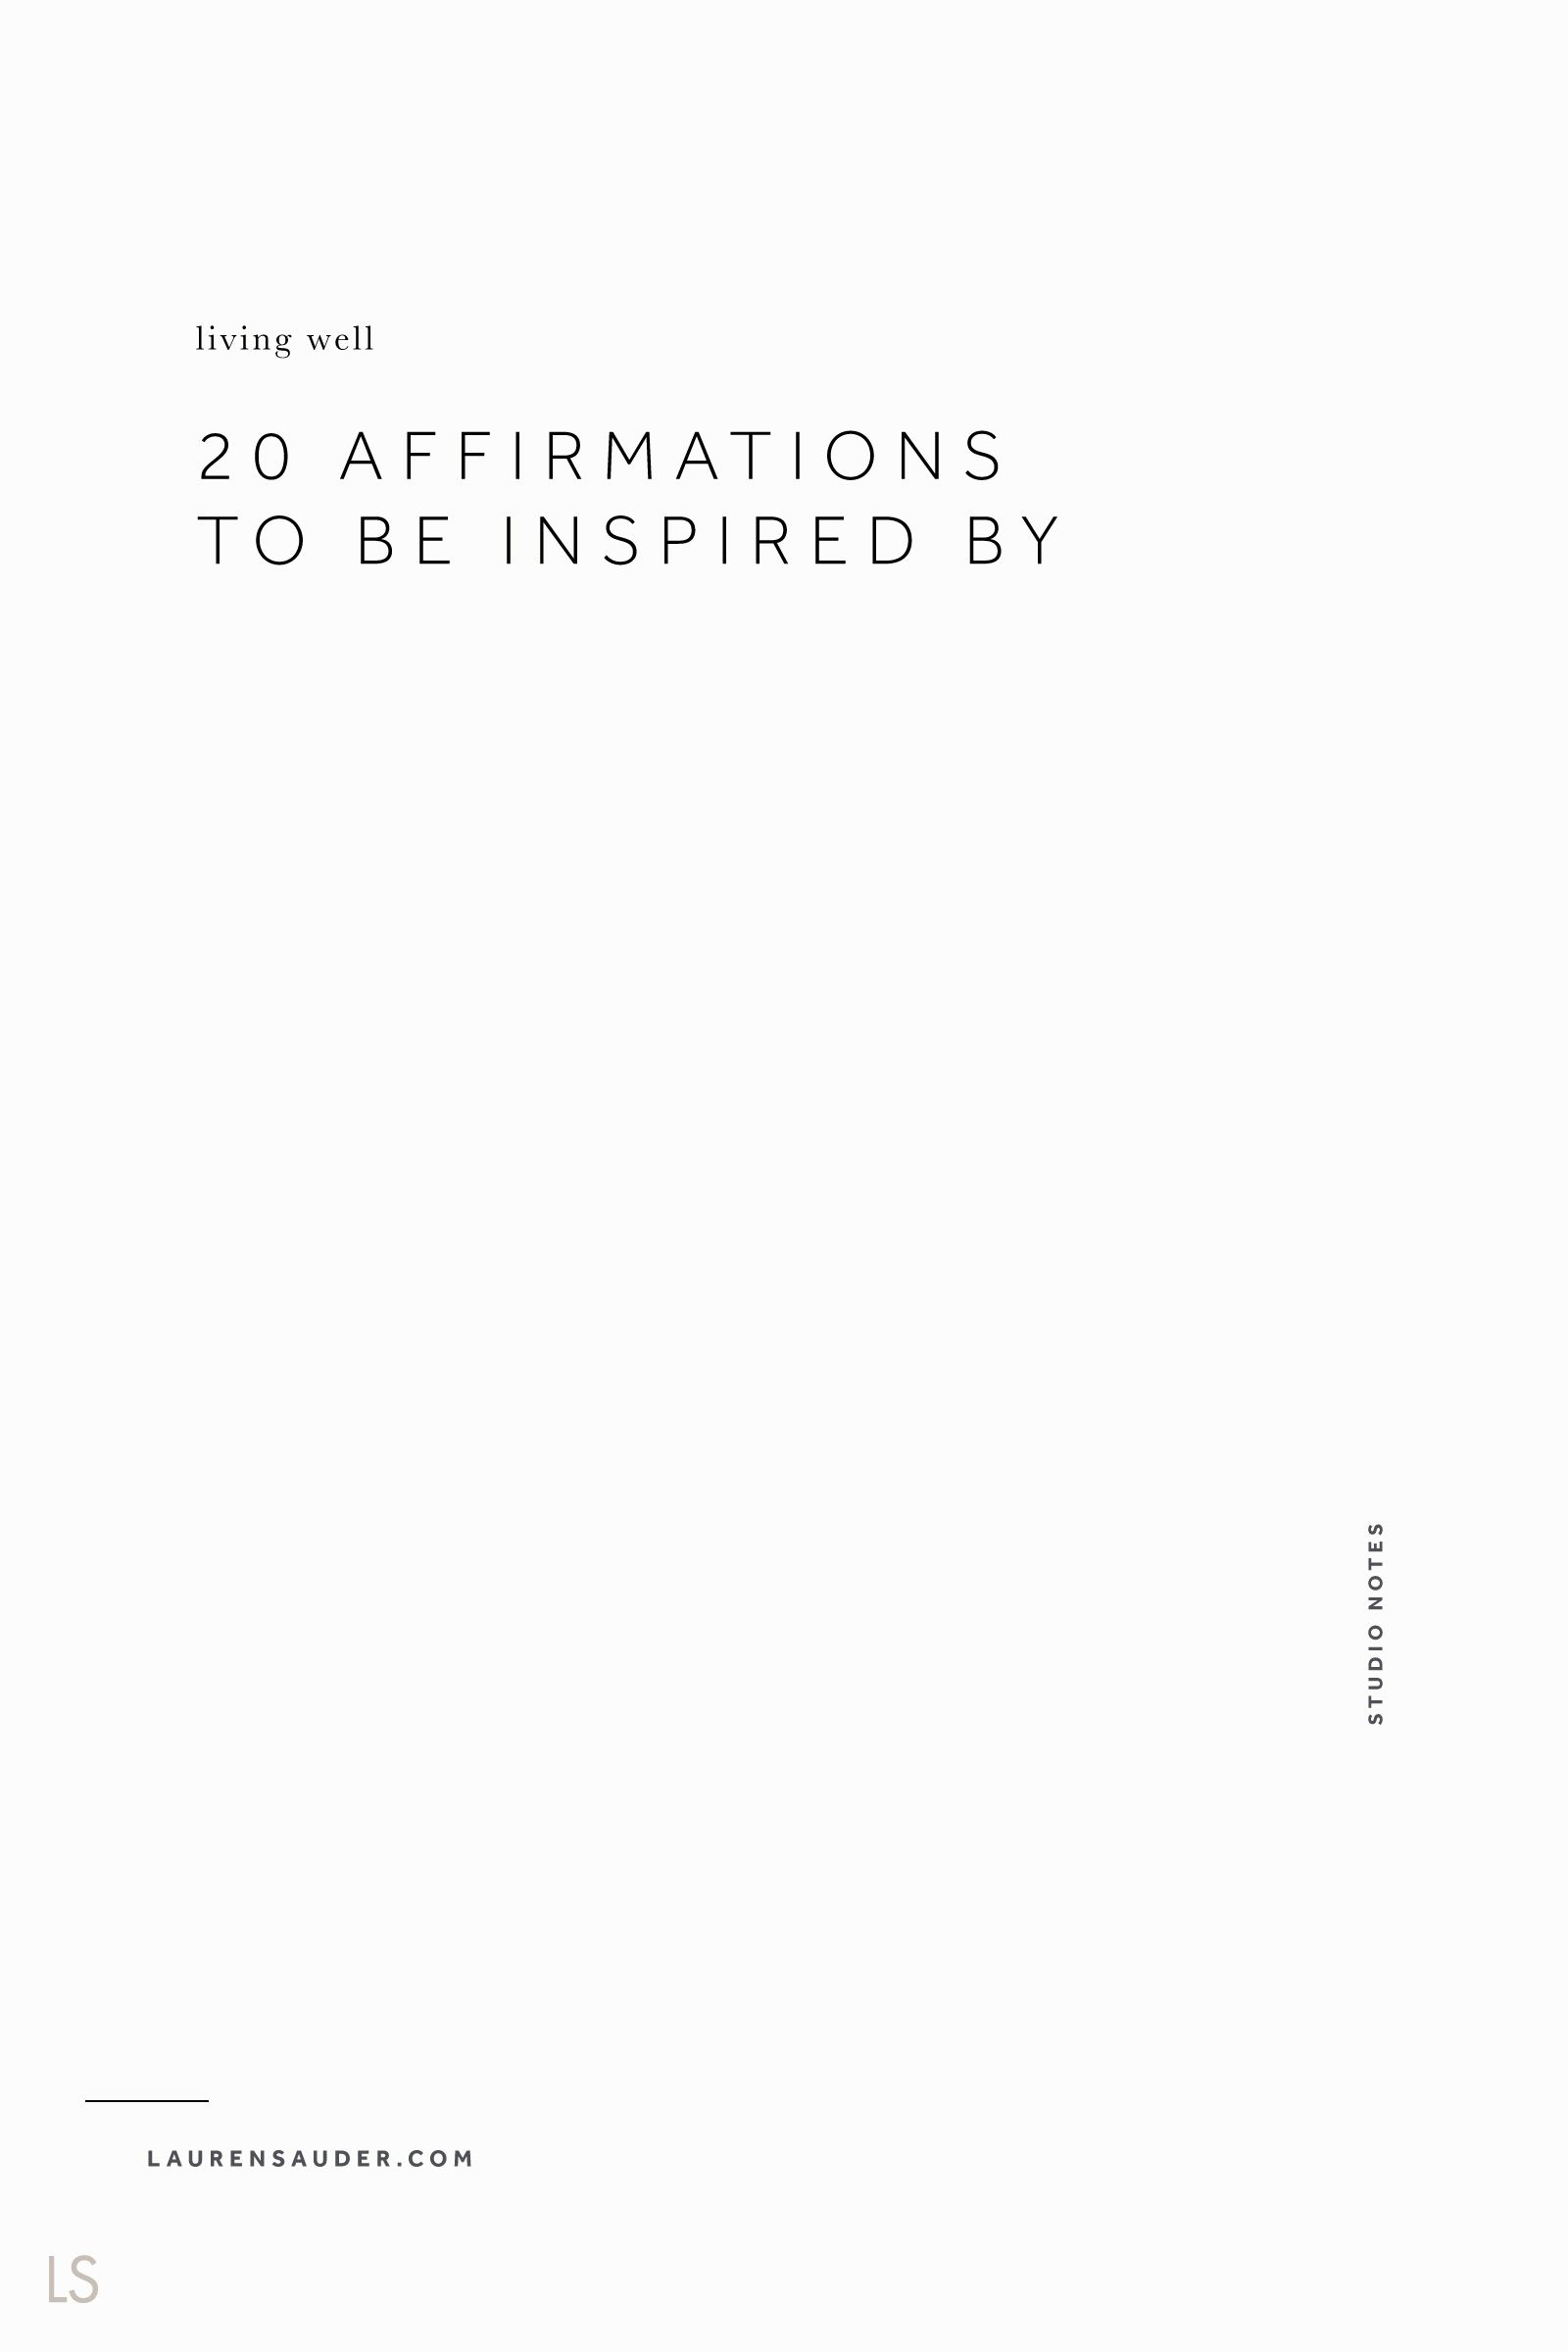 20 Affirmations To Be Inspired By